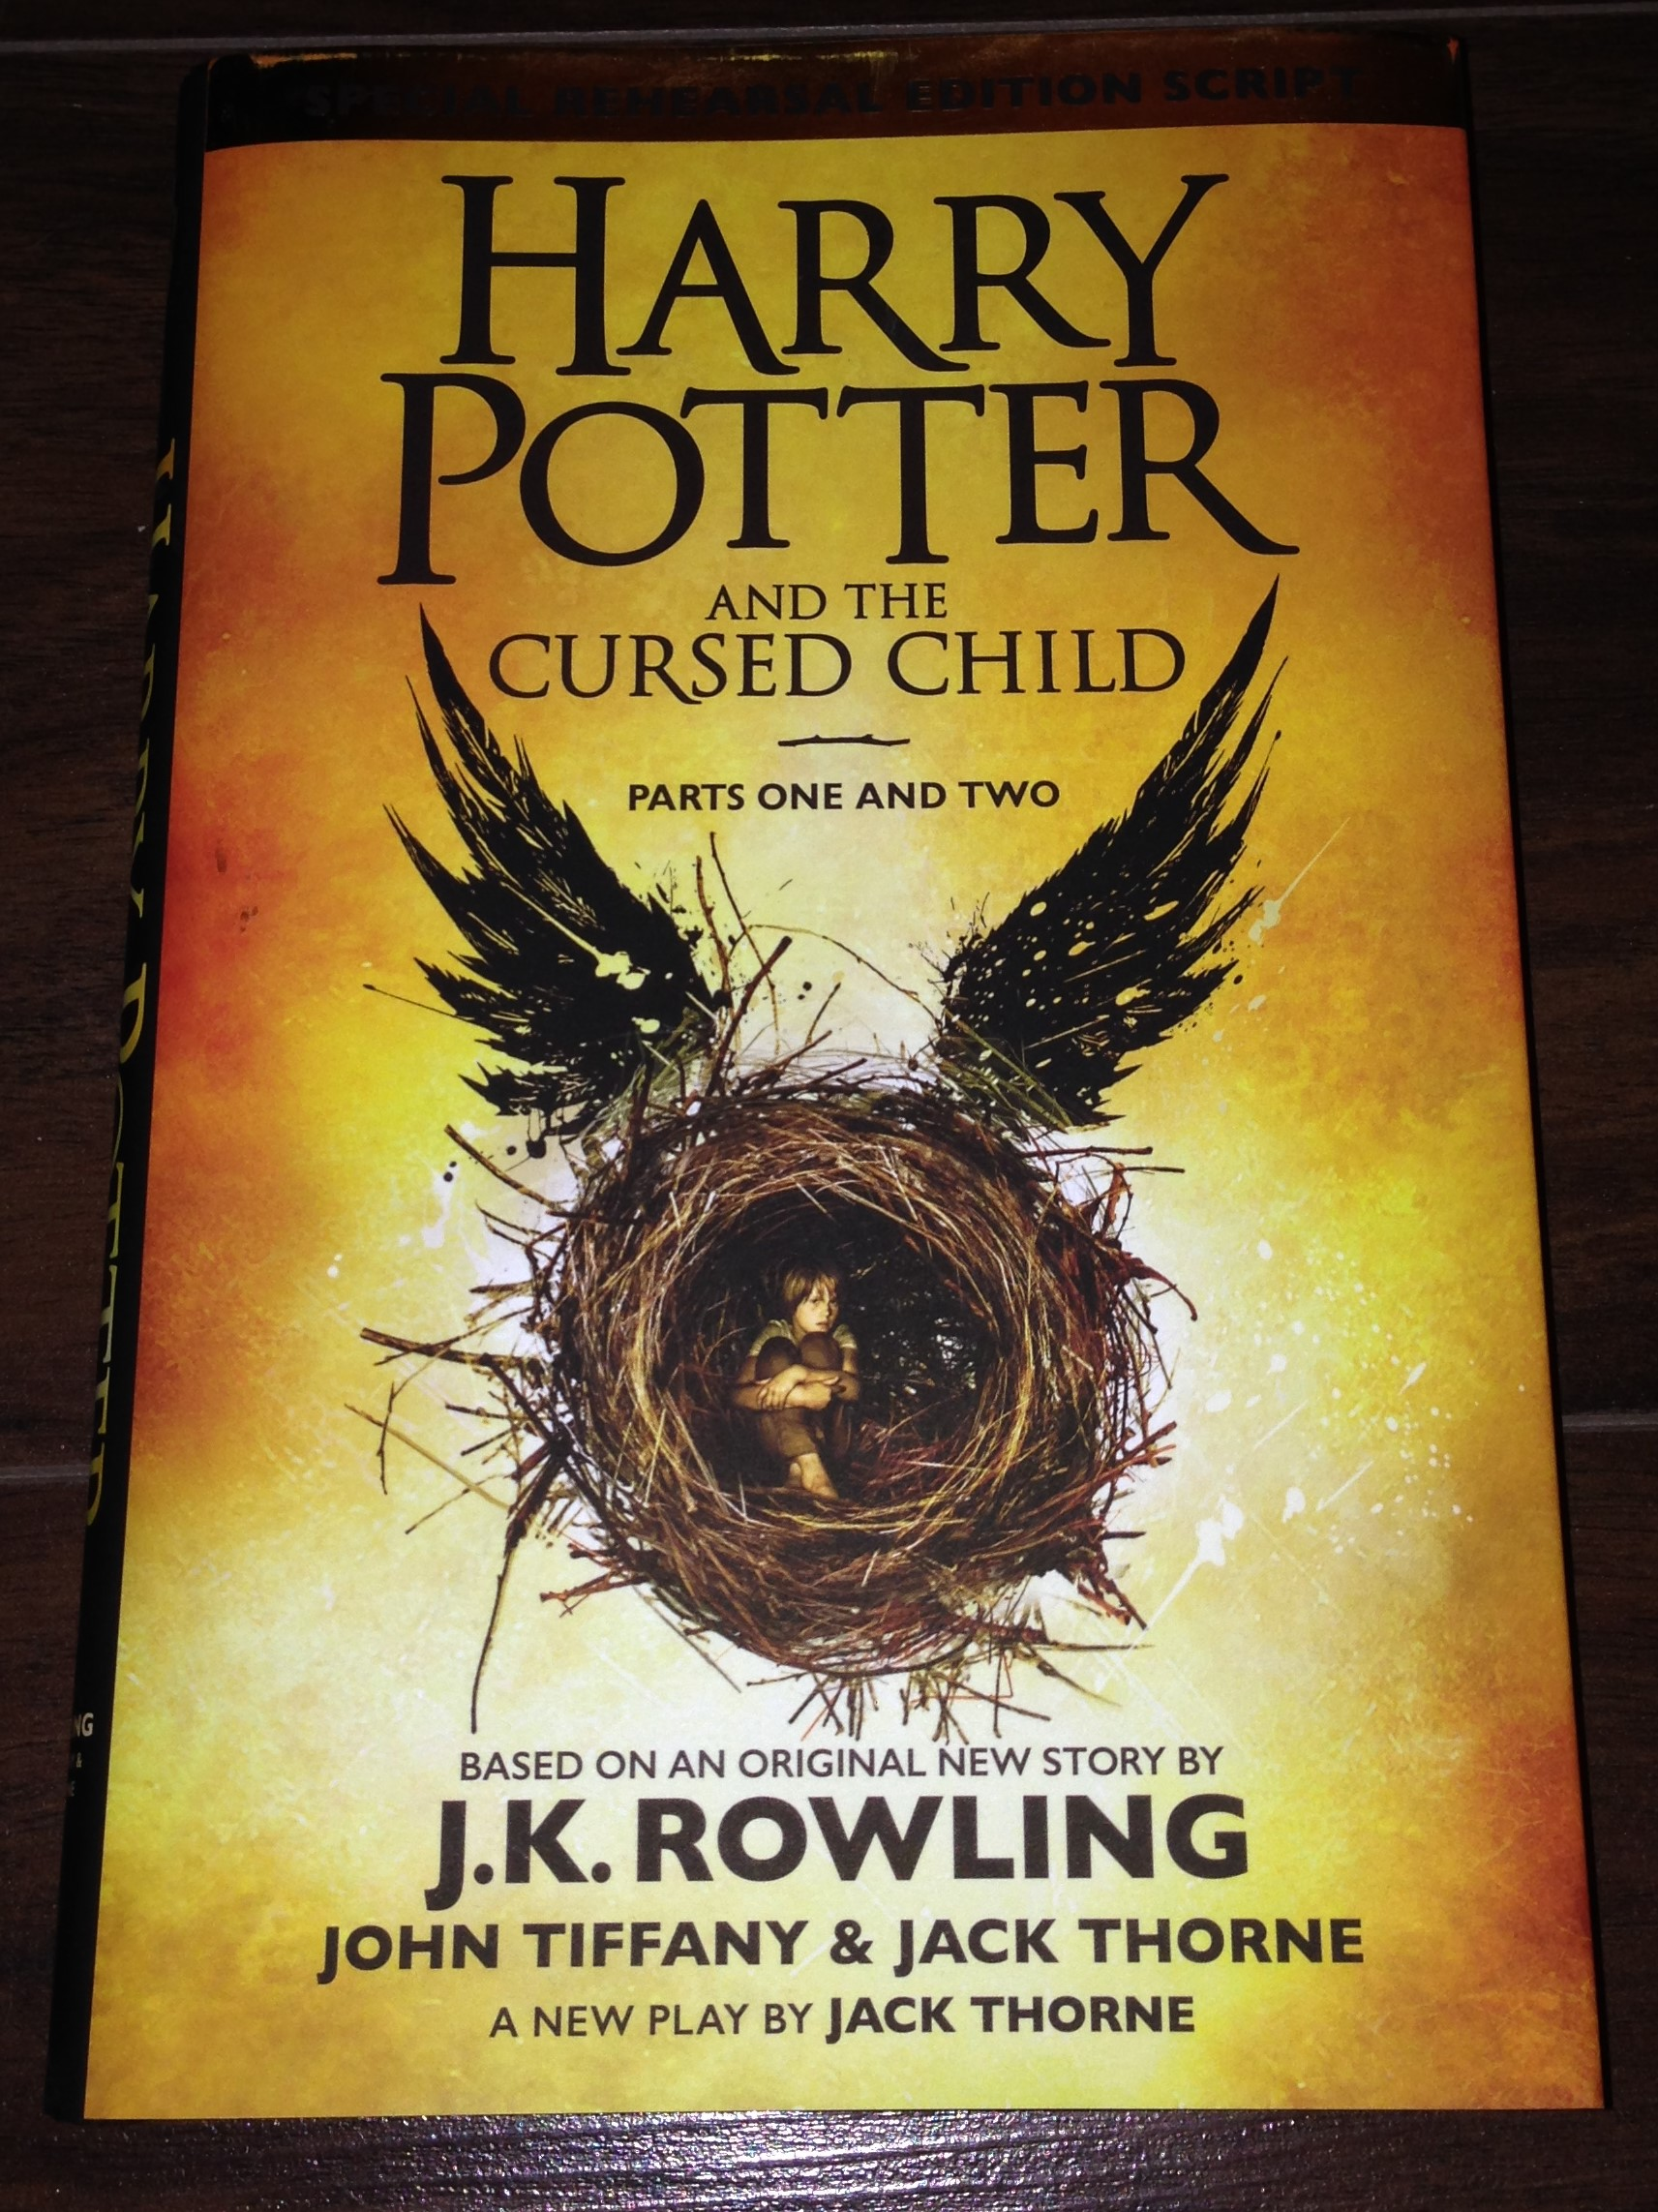 Harry Potter and the cursed child - cover - Amanda's update